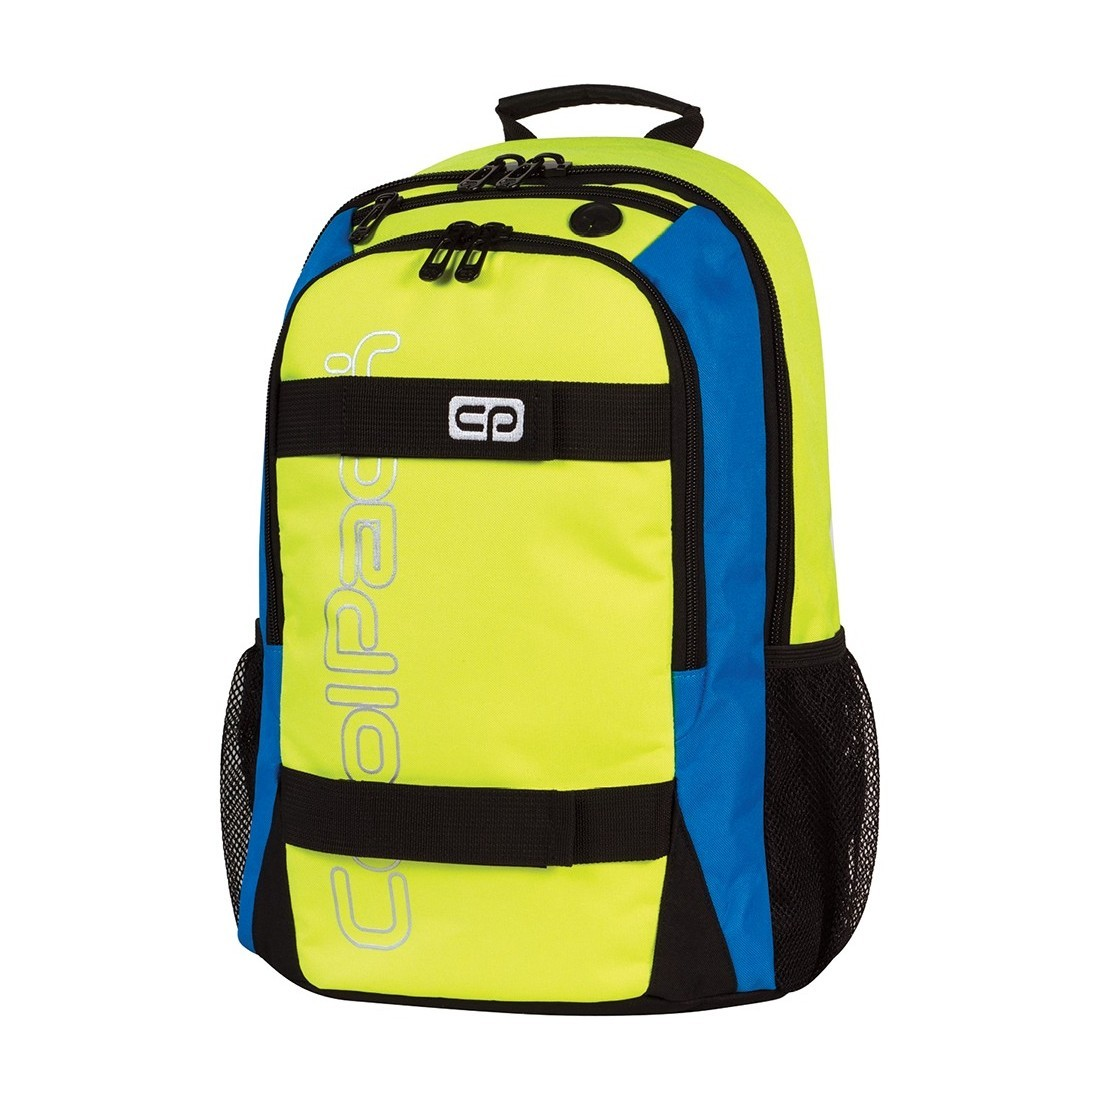 Plecak młodzieżowy CoolPack ACTION 2 przegrody YELLOW NEON CP 432 - plecak-tornister.pl